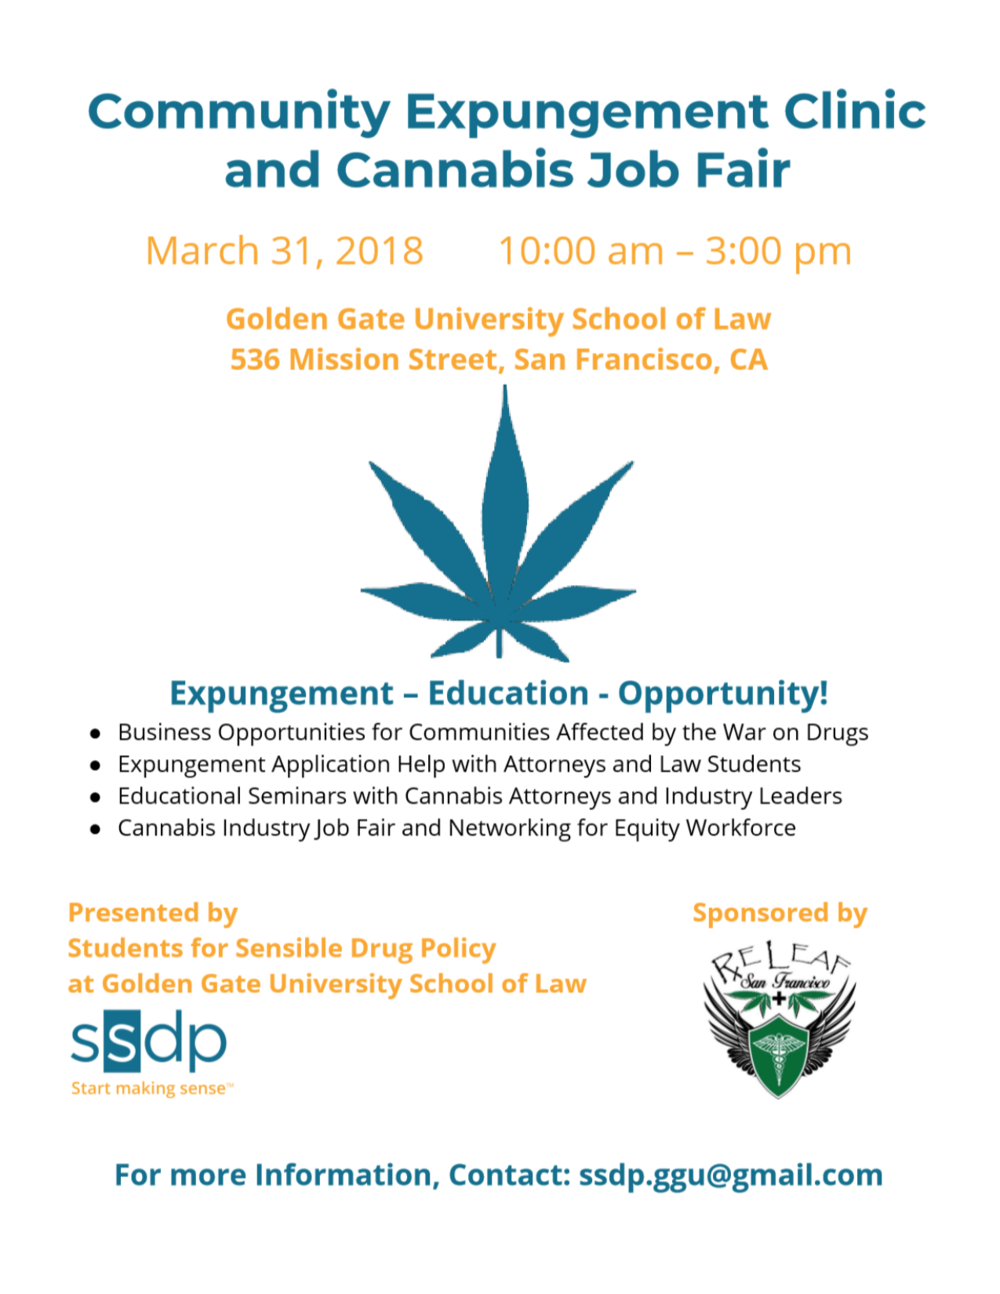 GGU Law job fair flyer.PNG